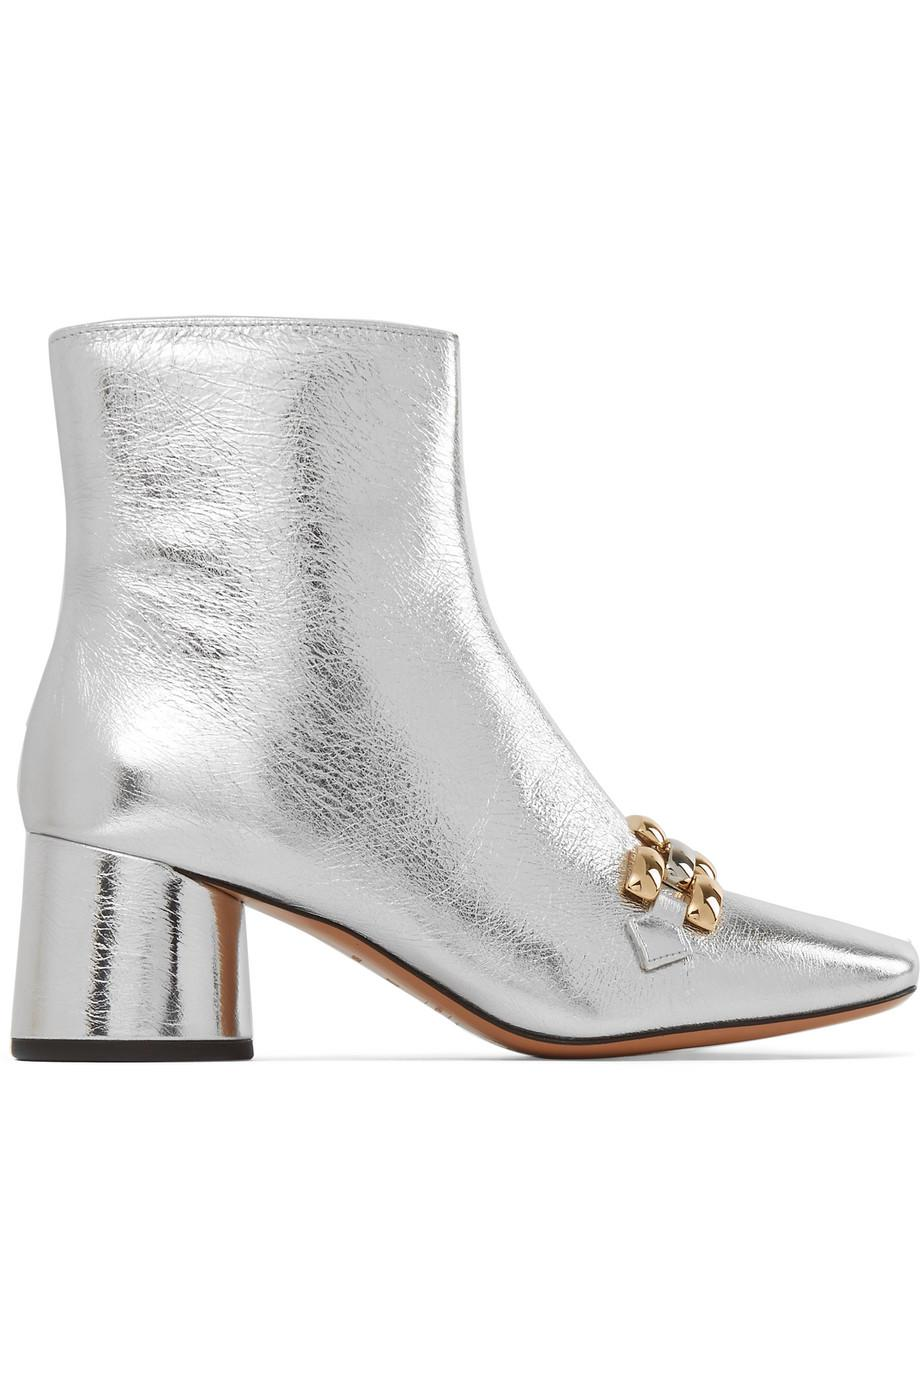 Buy Cheap New Styles Marc Jacobs Remi Chain-trimmed Metallic Leather Ankle Boots Sale For Sale LQ6kEPI